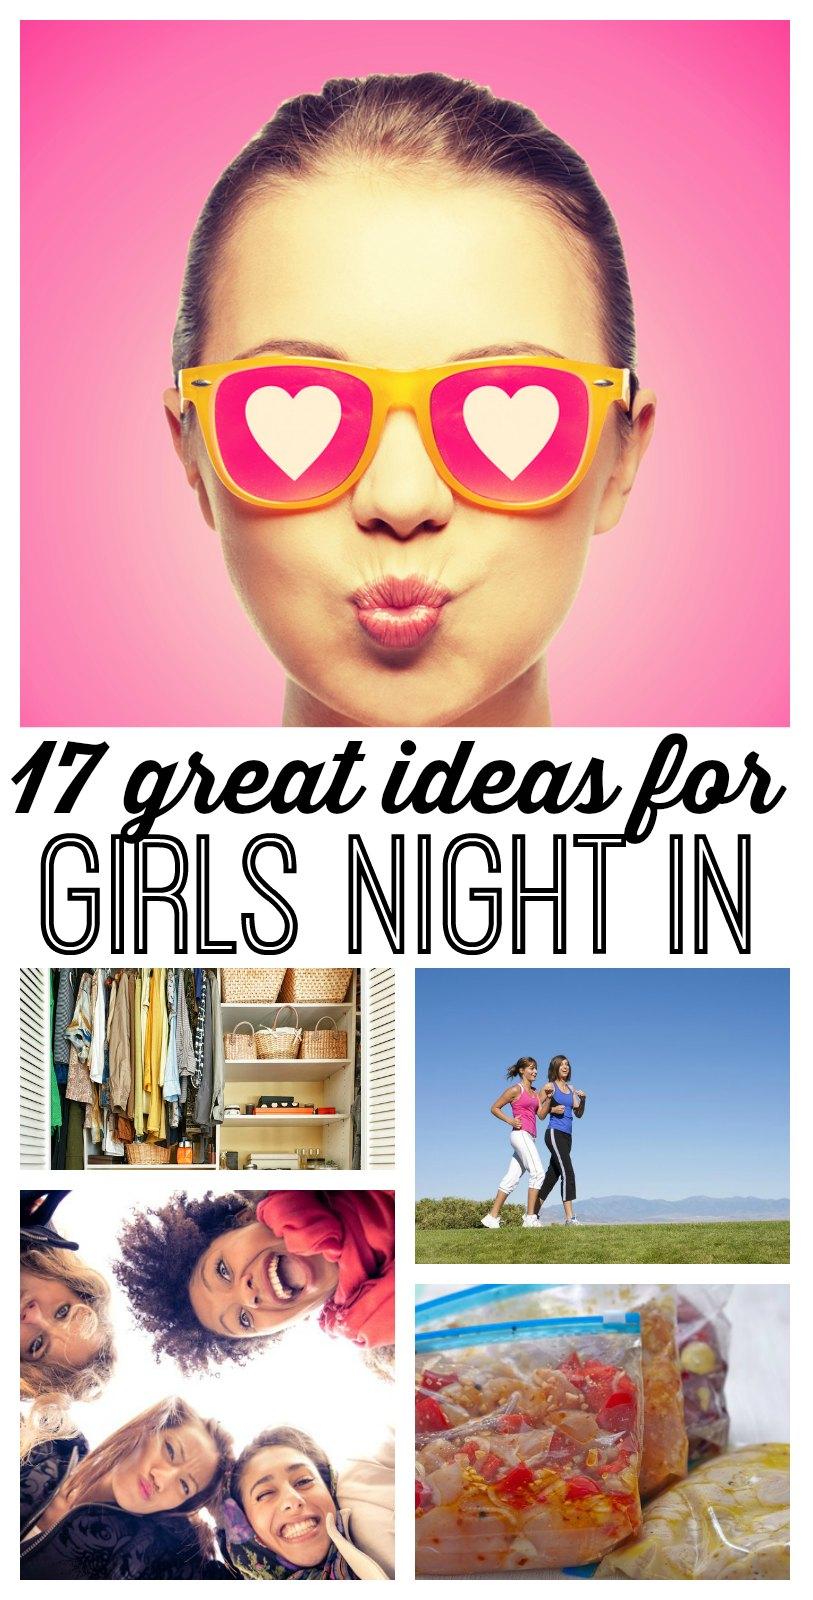 17 awesome girls' night in ideas! Sometimes - you just need a night IN with your girlfriends. Use these 17 girls night in party ideas to keep things simple and FUN! Call your best gal pals, and start making plans to stay in! (I especially love #12!)